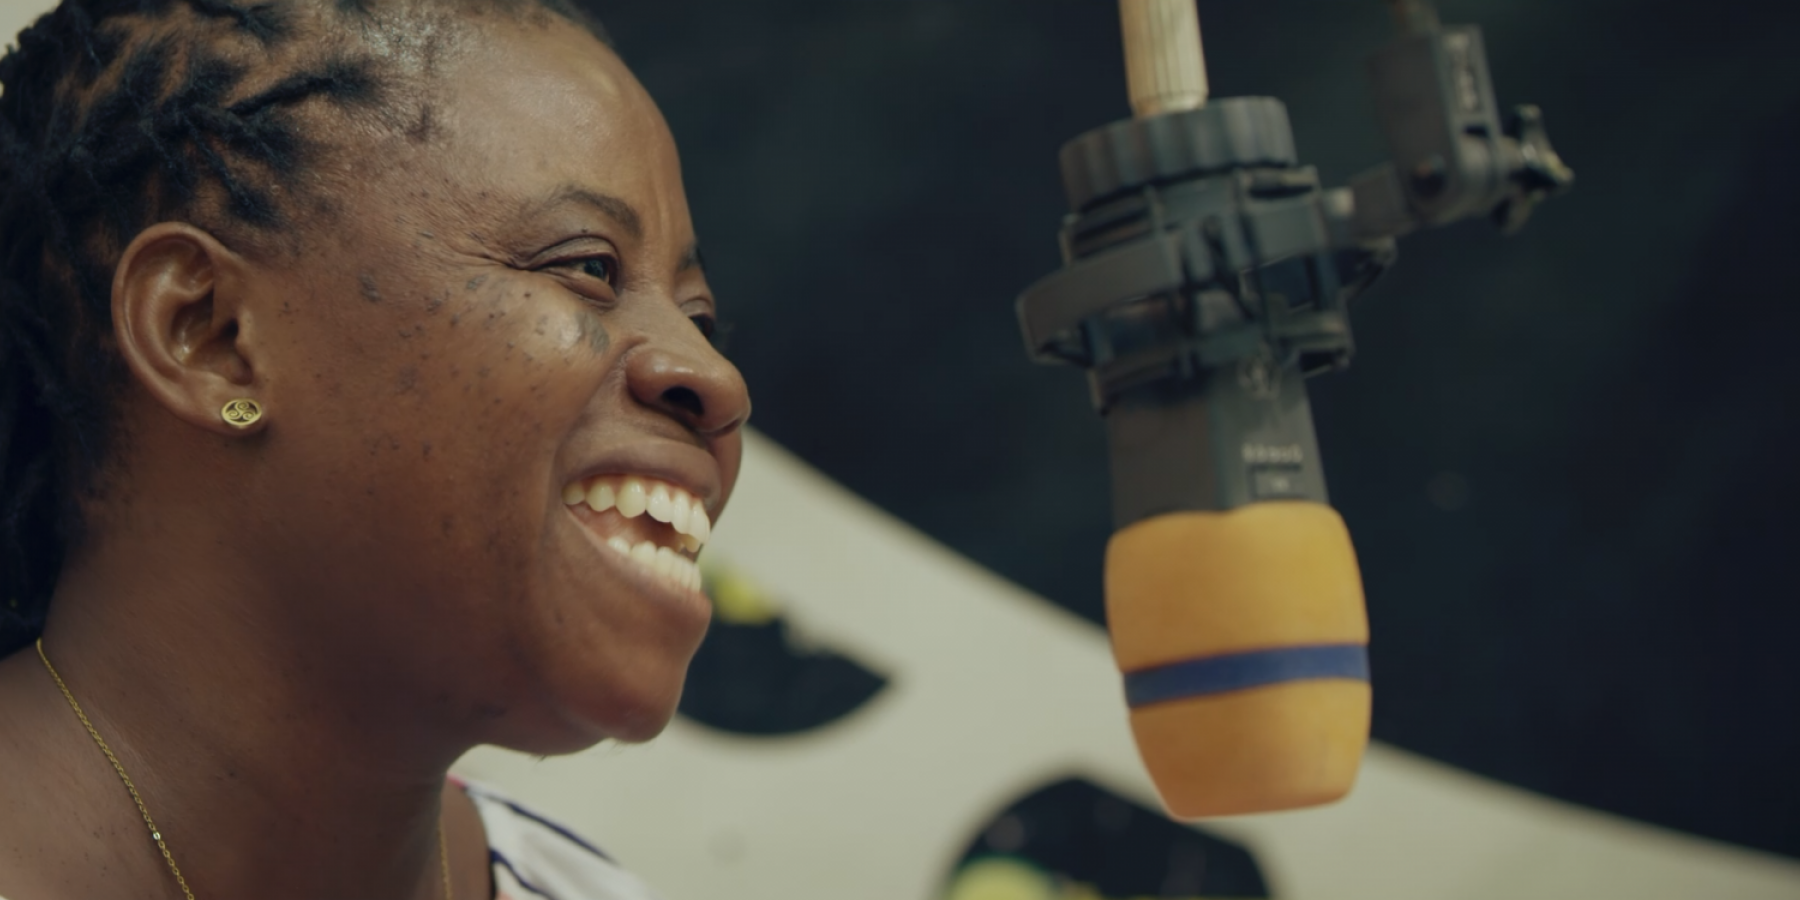 Martha Coffie, Vice President, Mental Health Society of Ghana. she speaks at a local radio station as part of the mini-film 'Stopping the Stigma'.